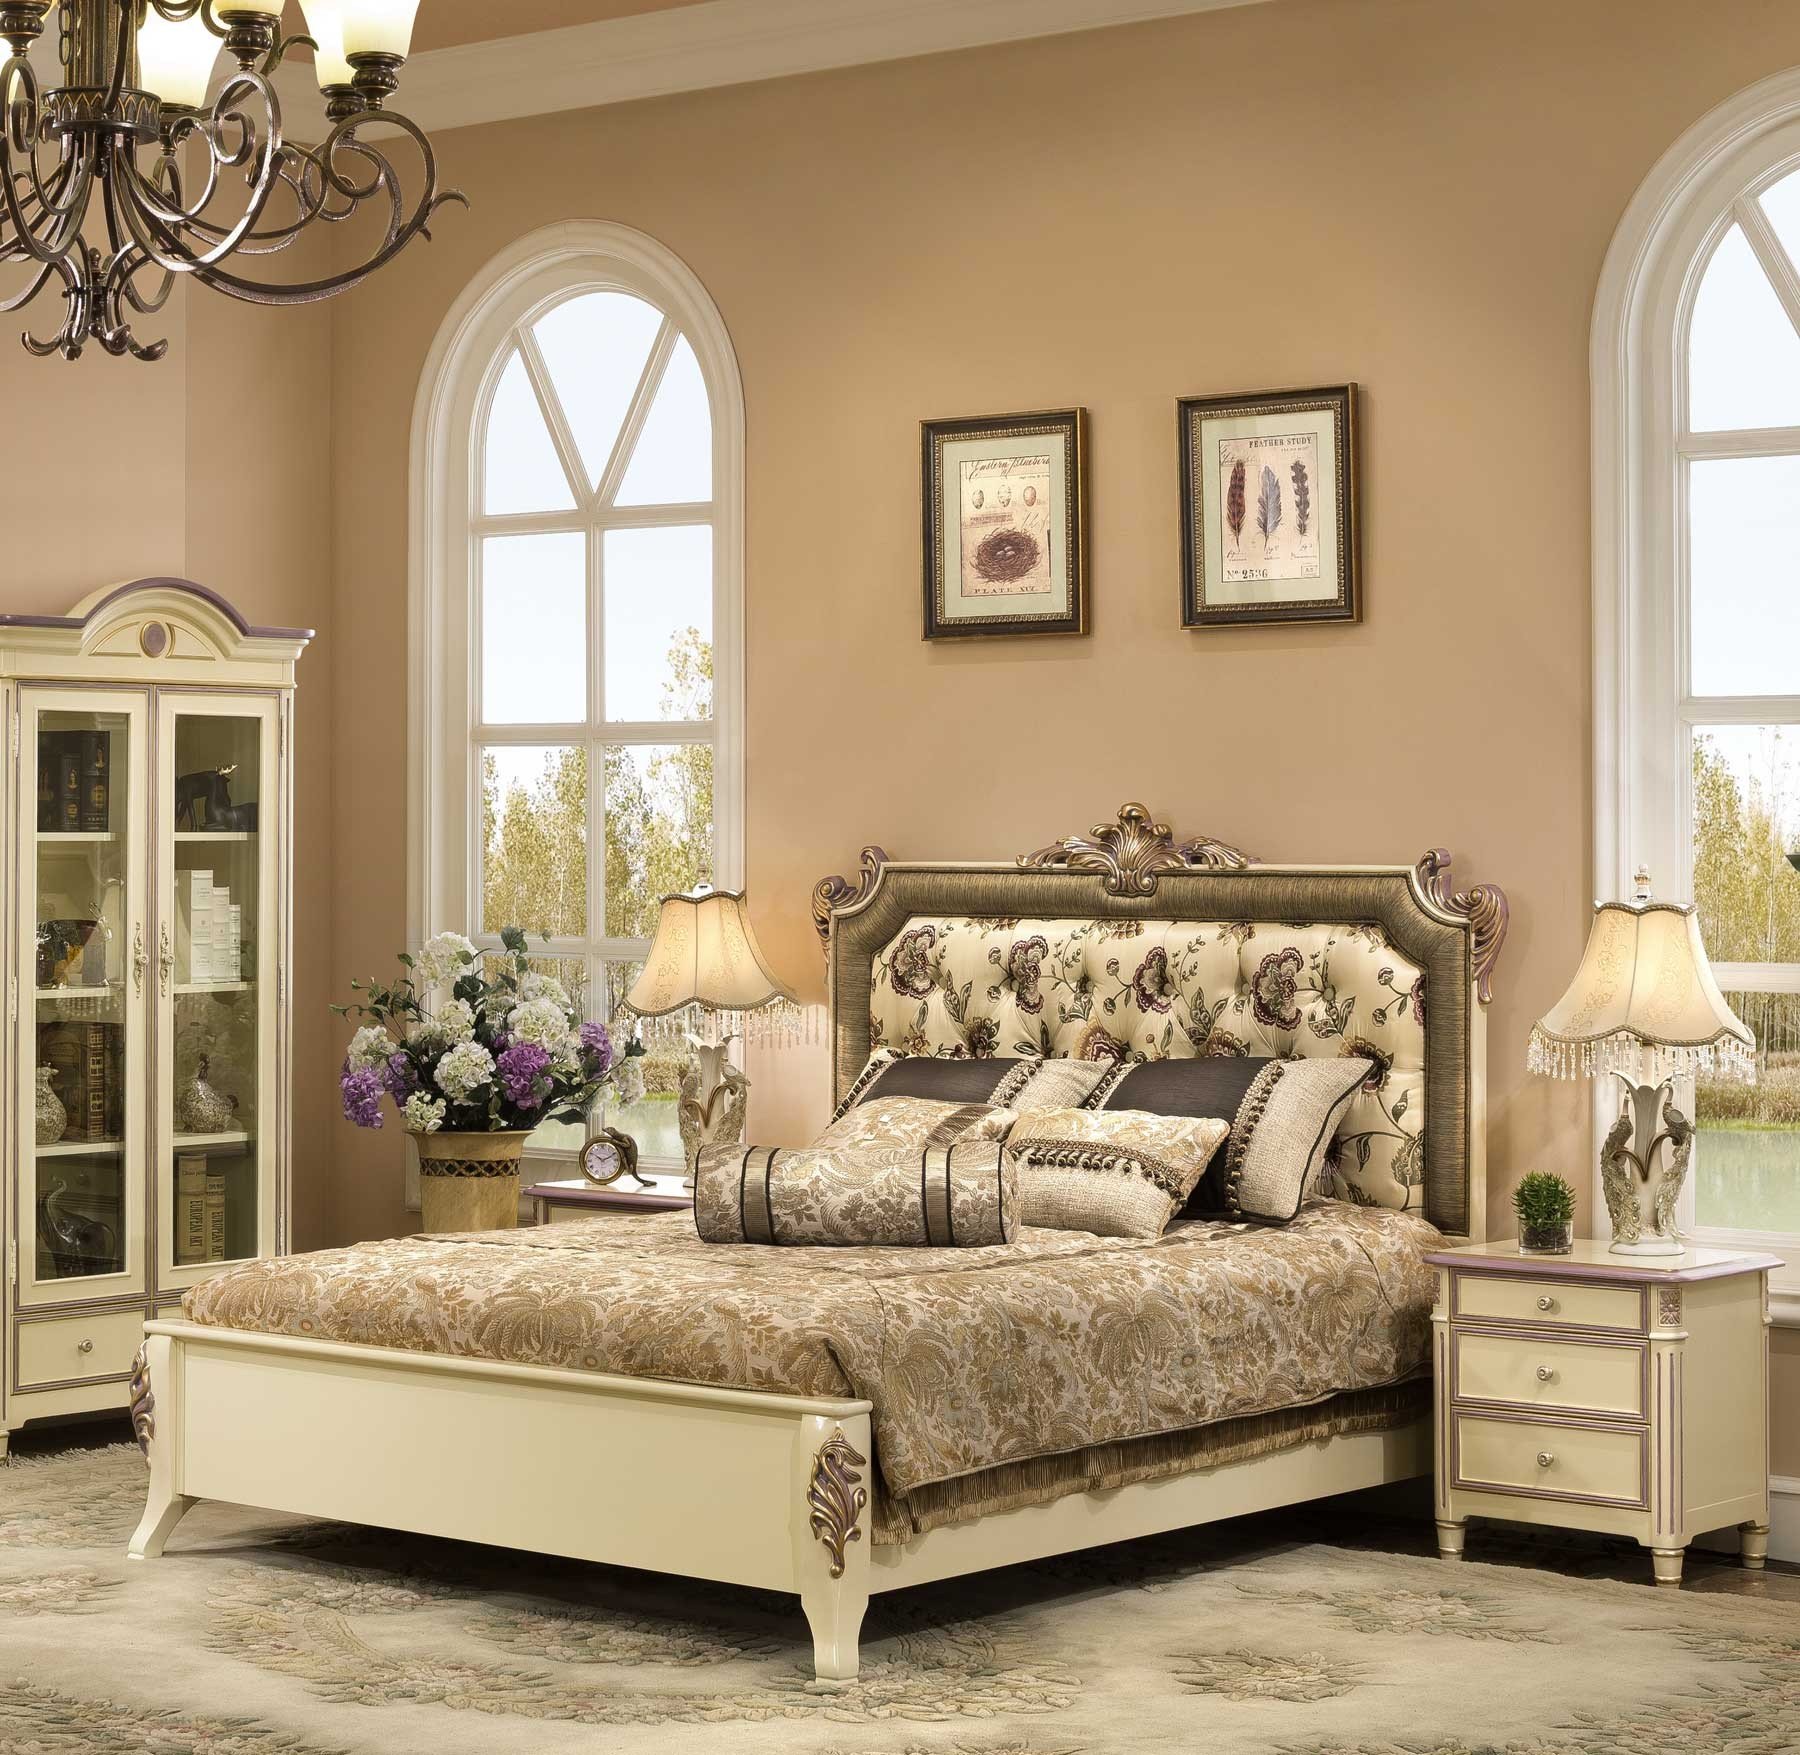 Fleming Bed shown in Stella Blanc finish